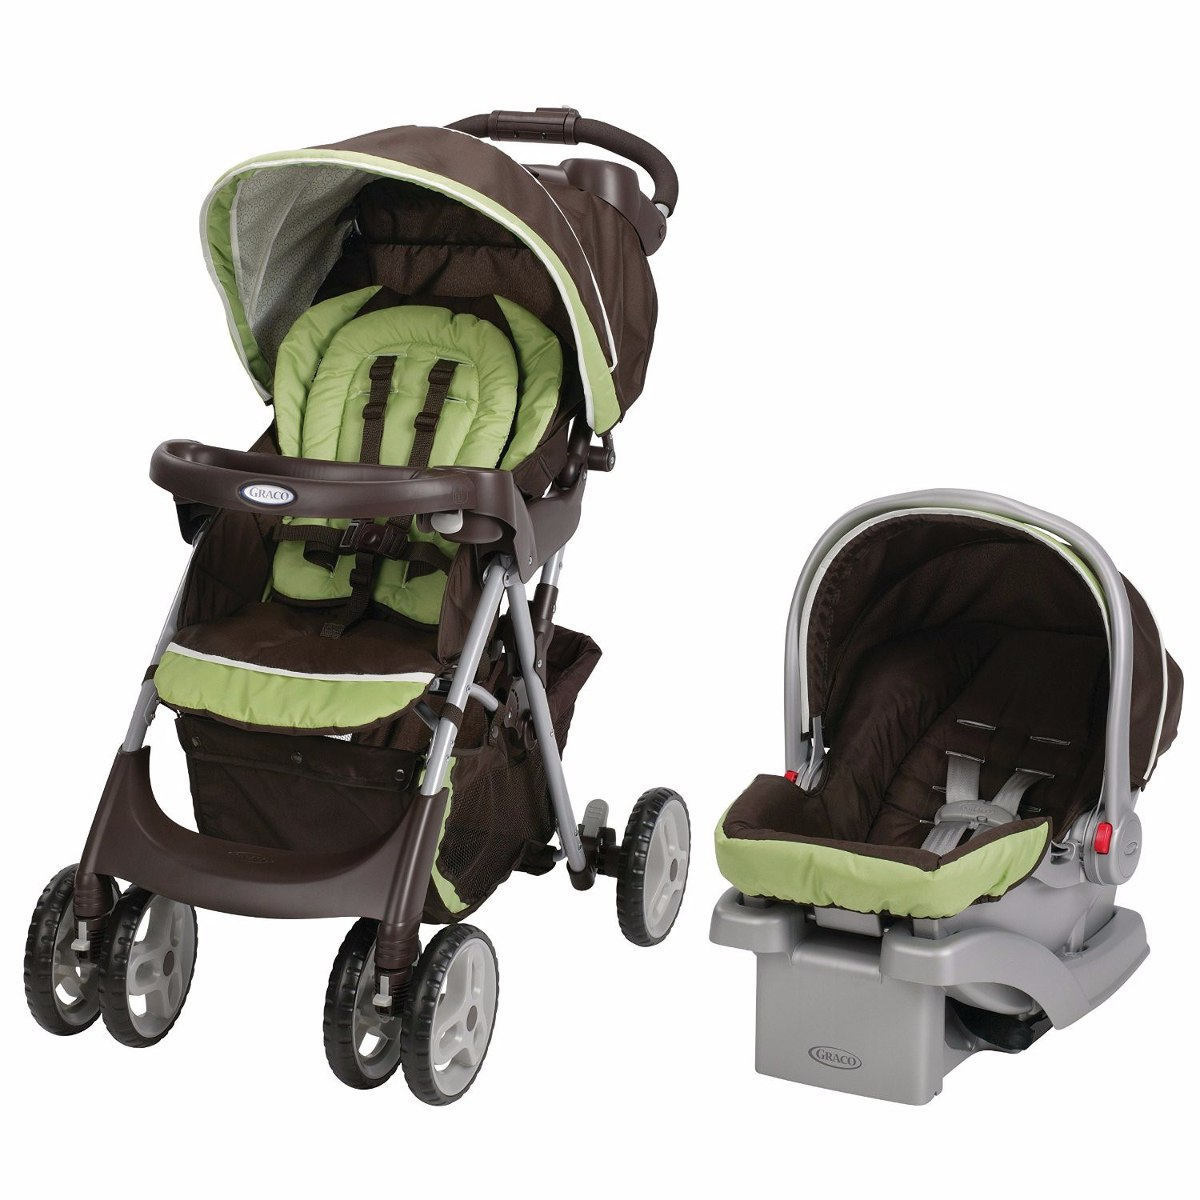 Carreola Carriola Travel System Graco Comfy Cruiser